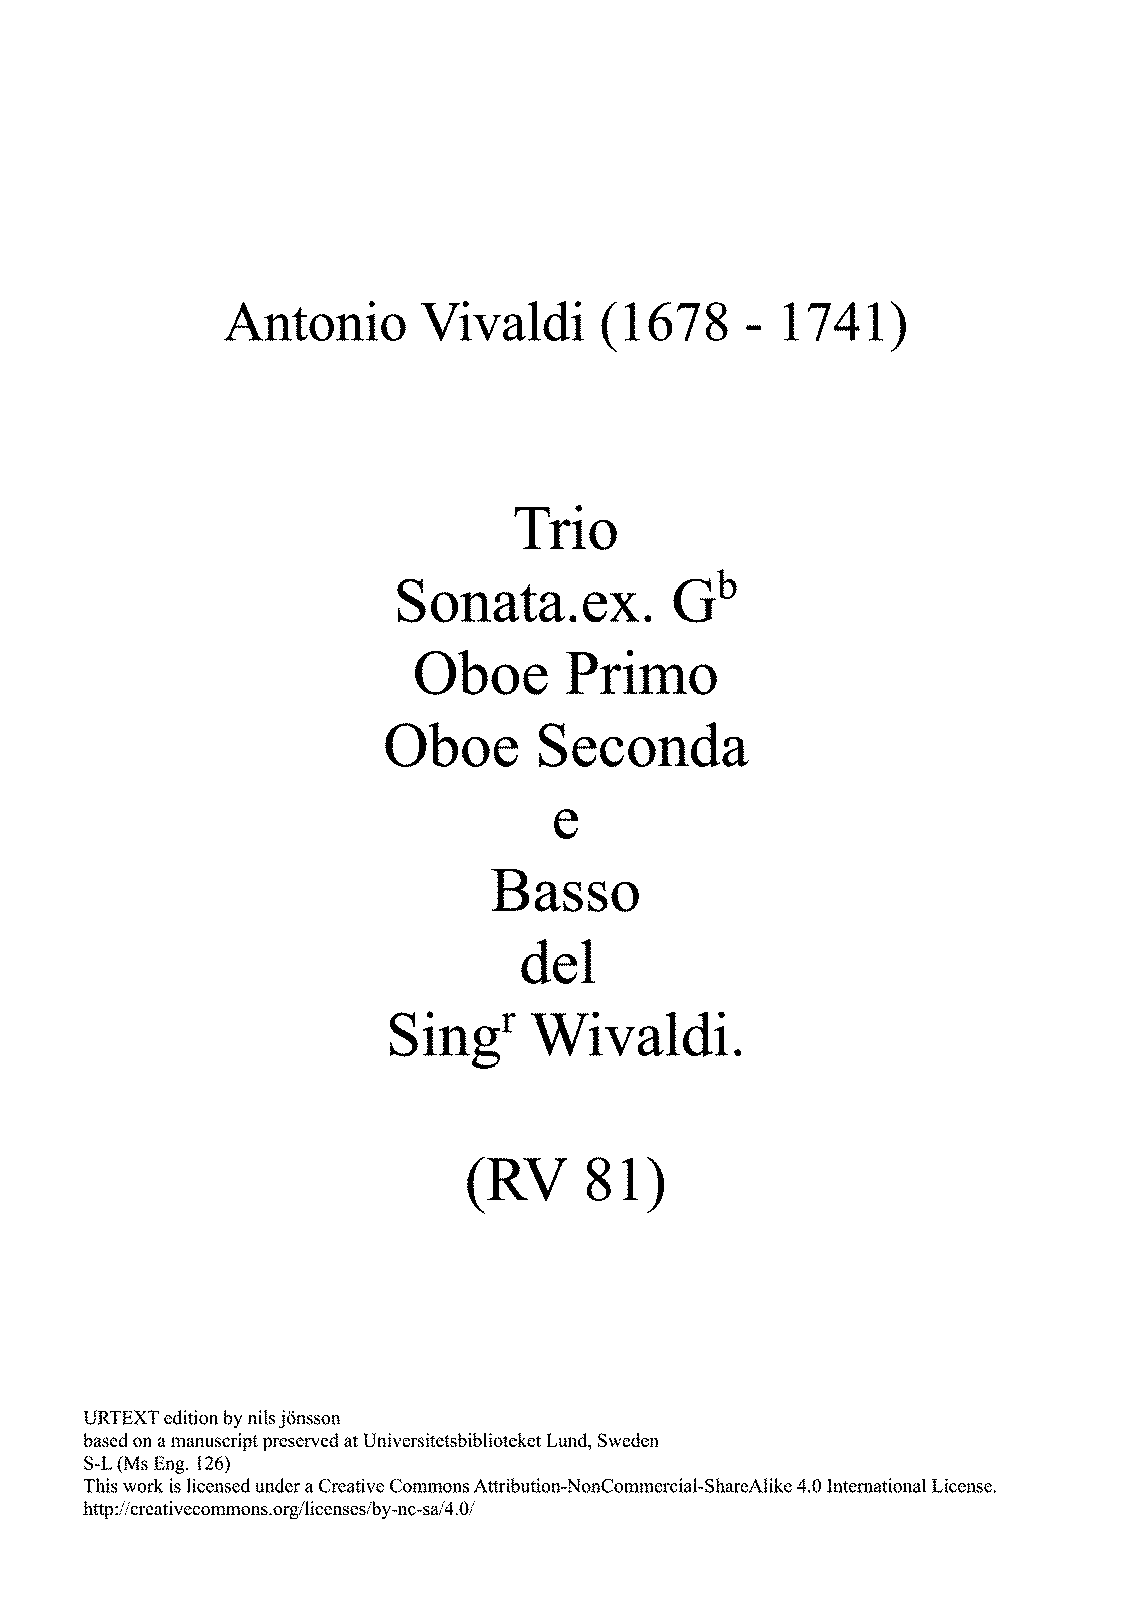 Trio Sonata In G Minor RV 81 Vivaldi Antonio